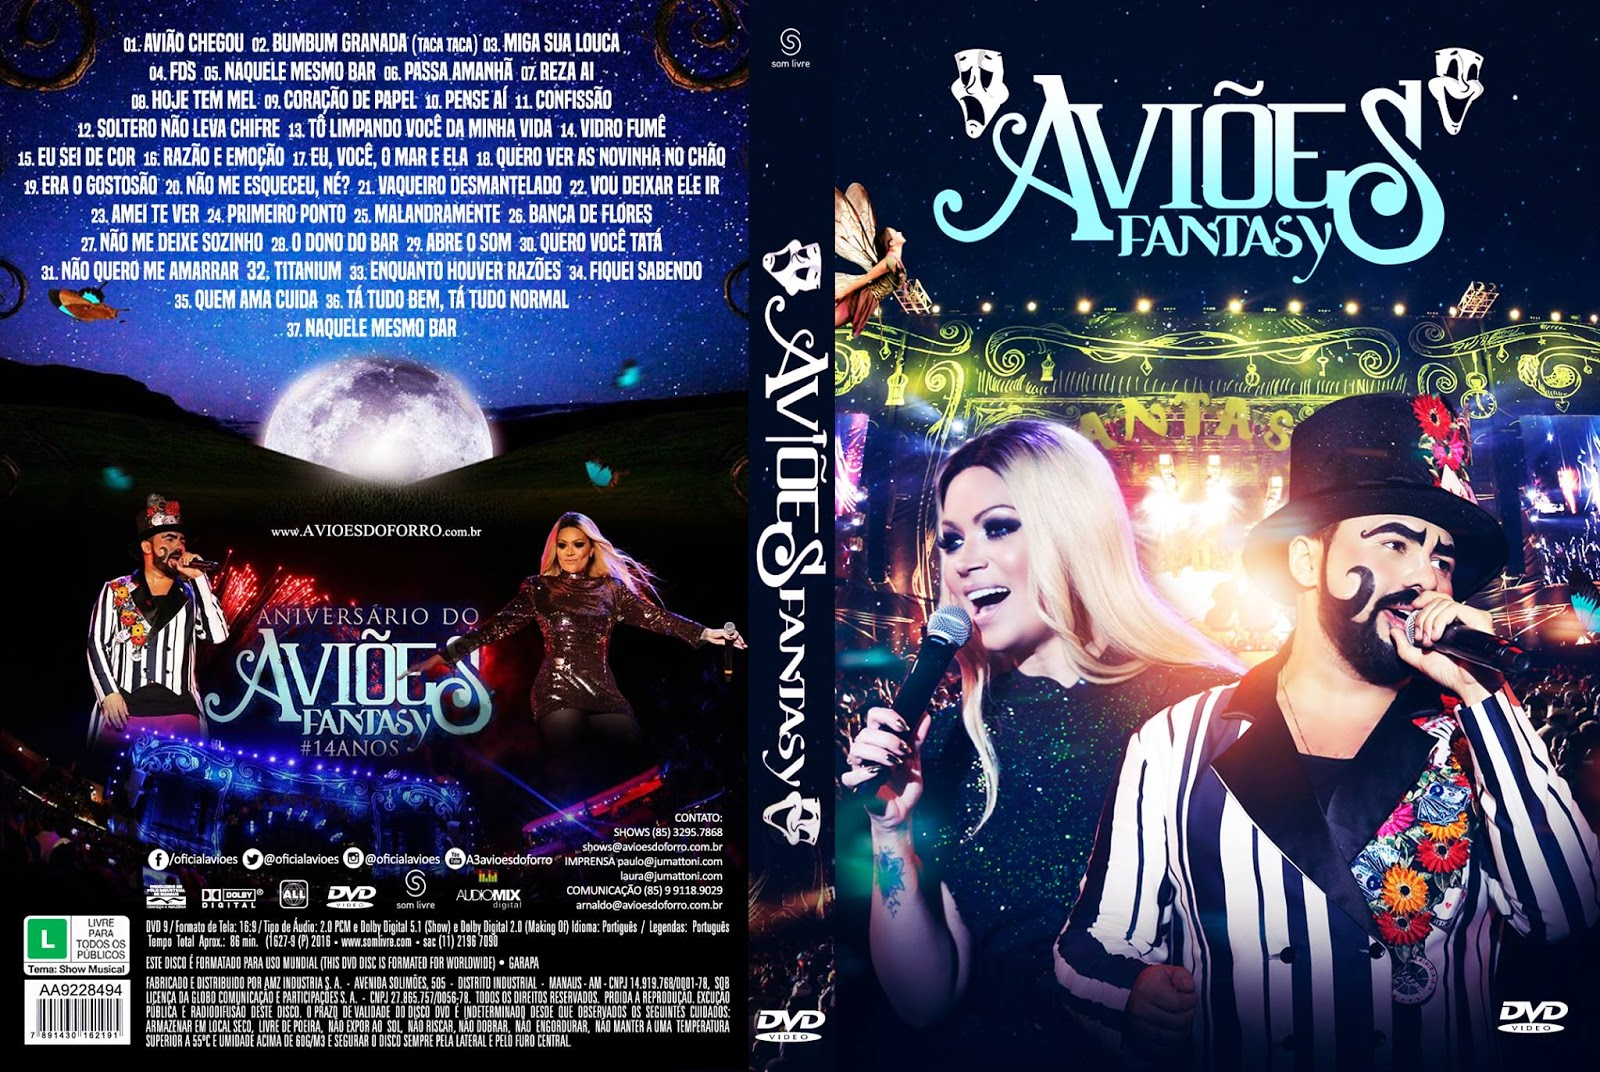 Download Aviões Do Forró Fantasy 2016 DVD-R Download Aviões Do Forró Fantasy 2016 DVD-R Avioes 2BDo 2BForr 25C3 25B3 2B  2BFantasy 2B2016 2BDVD R 2BCapa